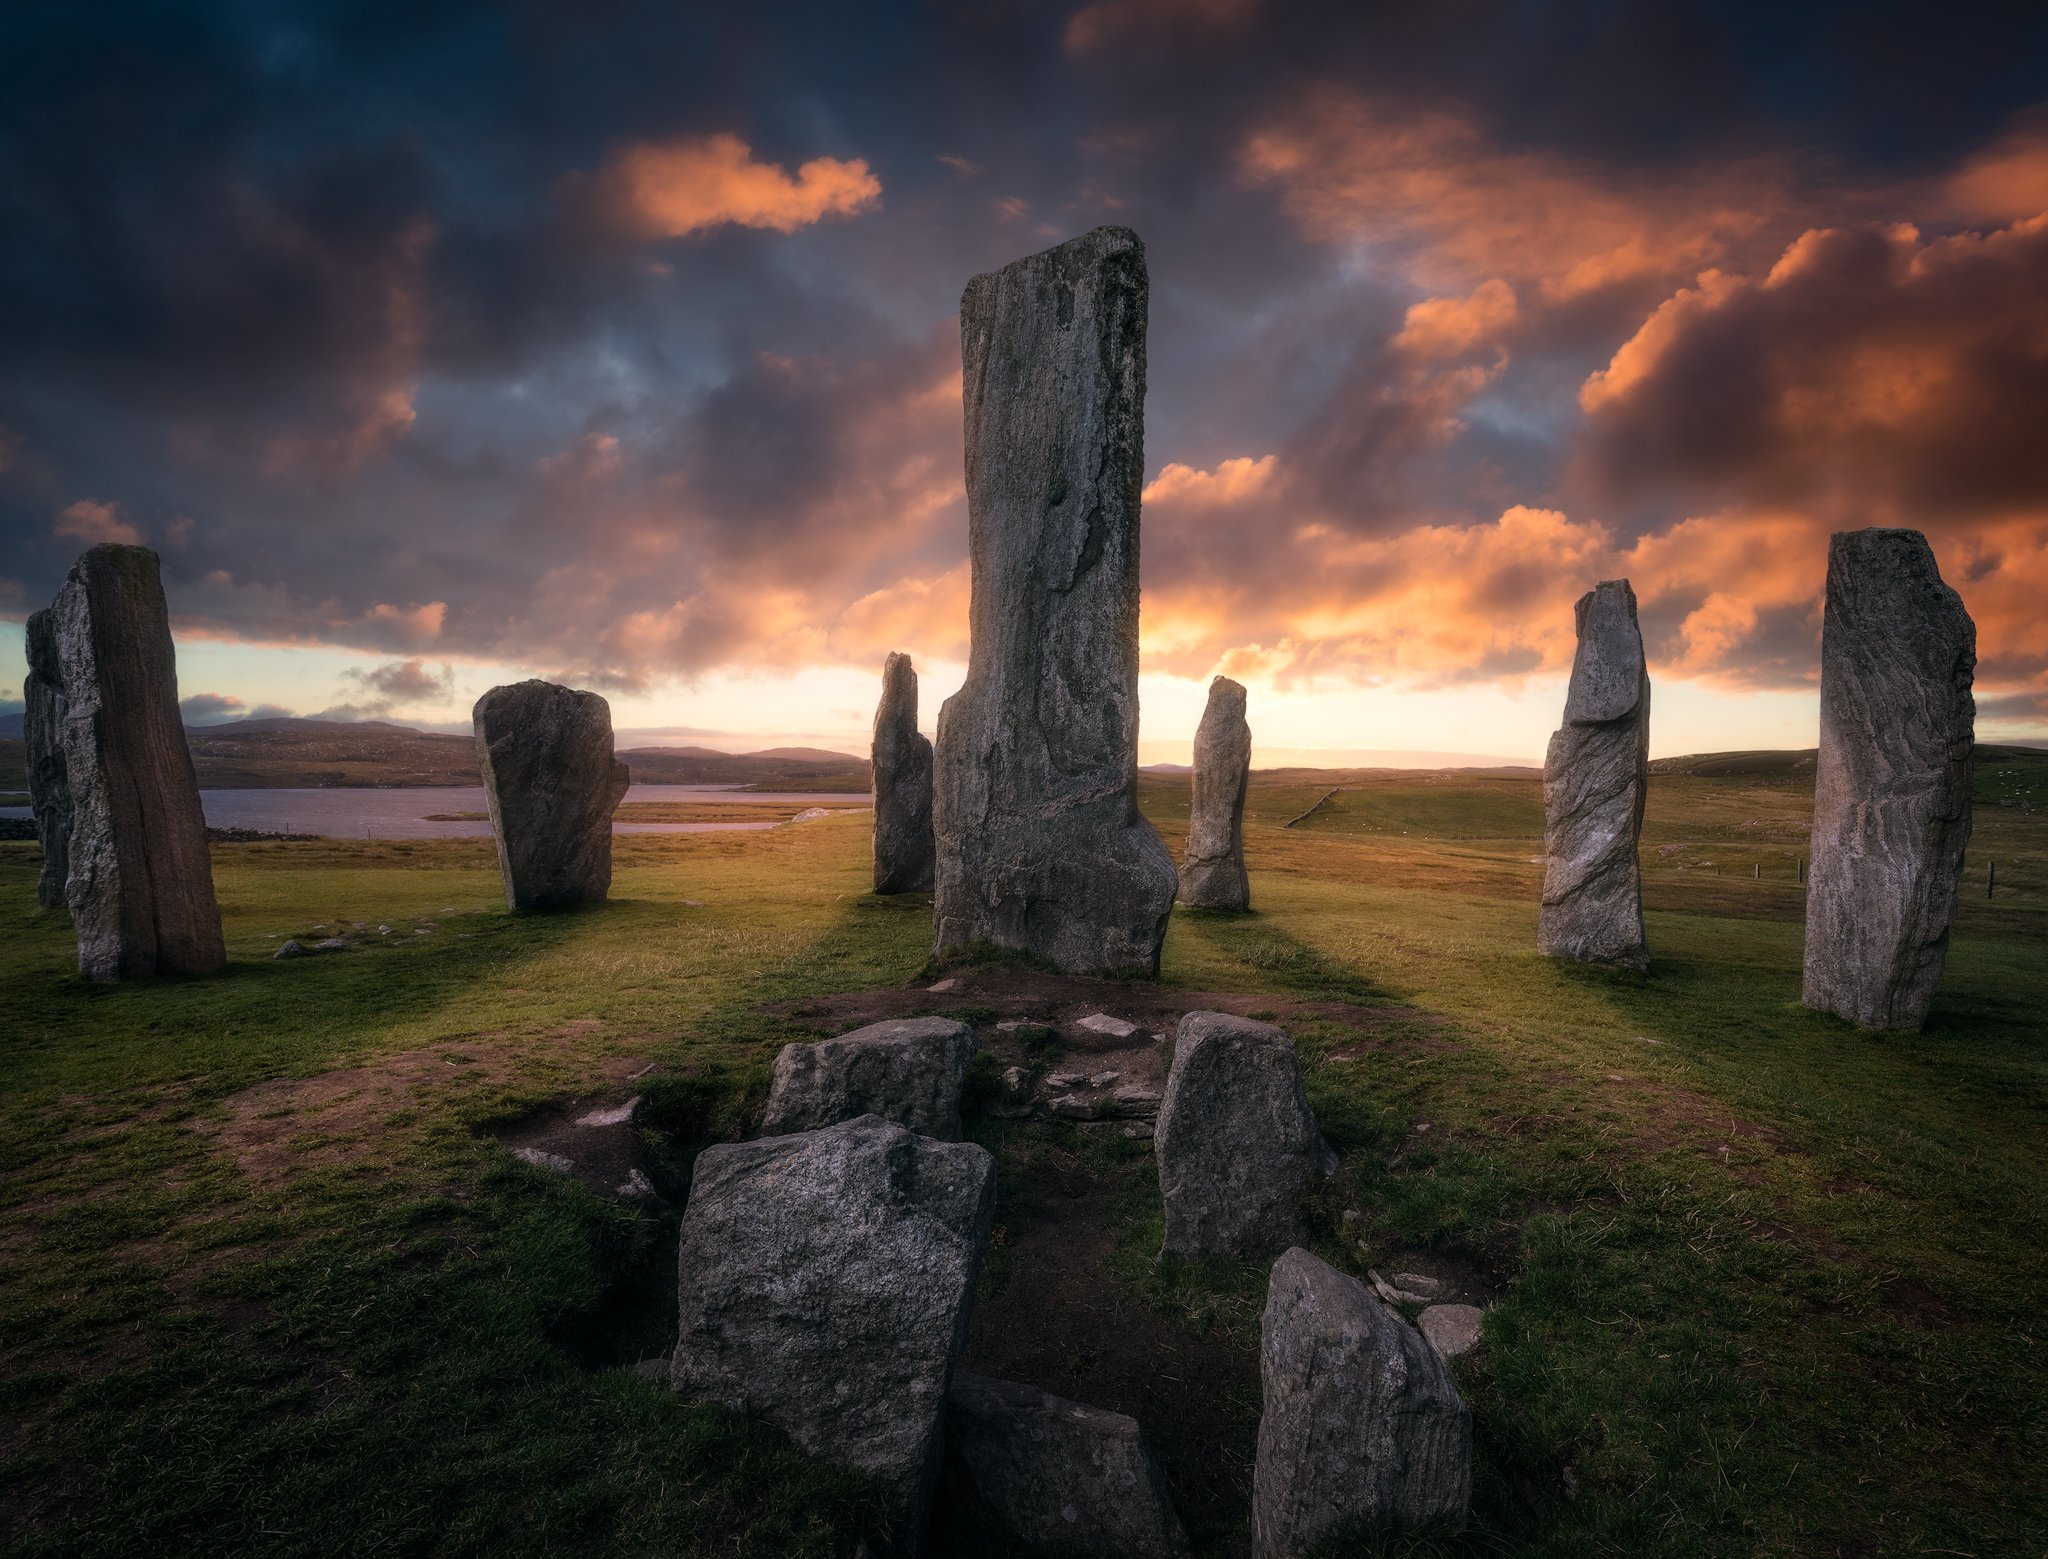 outer hebrides callanish stones scotland suset sky light clouds colors temple neolithic, Maciej Warchoł